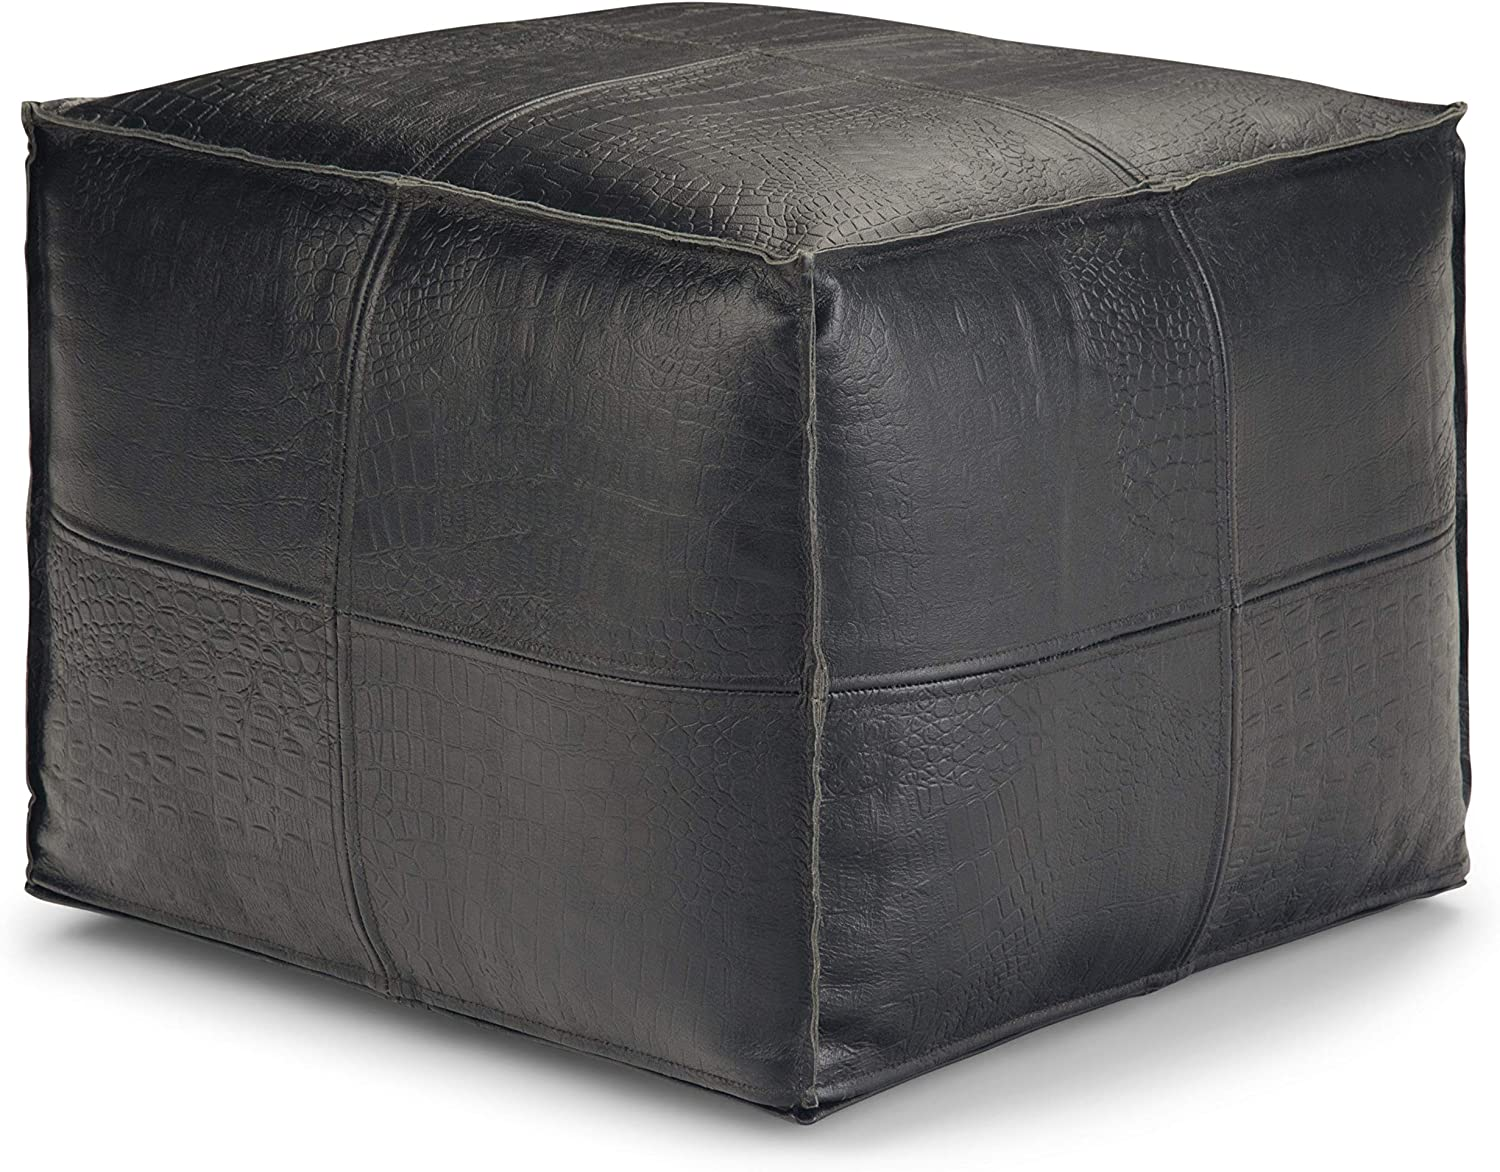 SIMPLIHOME Bowen Square Pouf, Footstool, Upholstered in Black Leather, for the Living Room, Bedroom and Kids Room, Contemporary, Modern